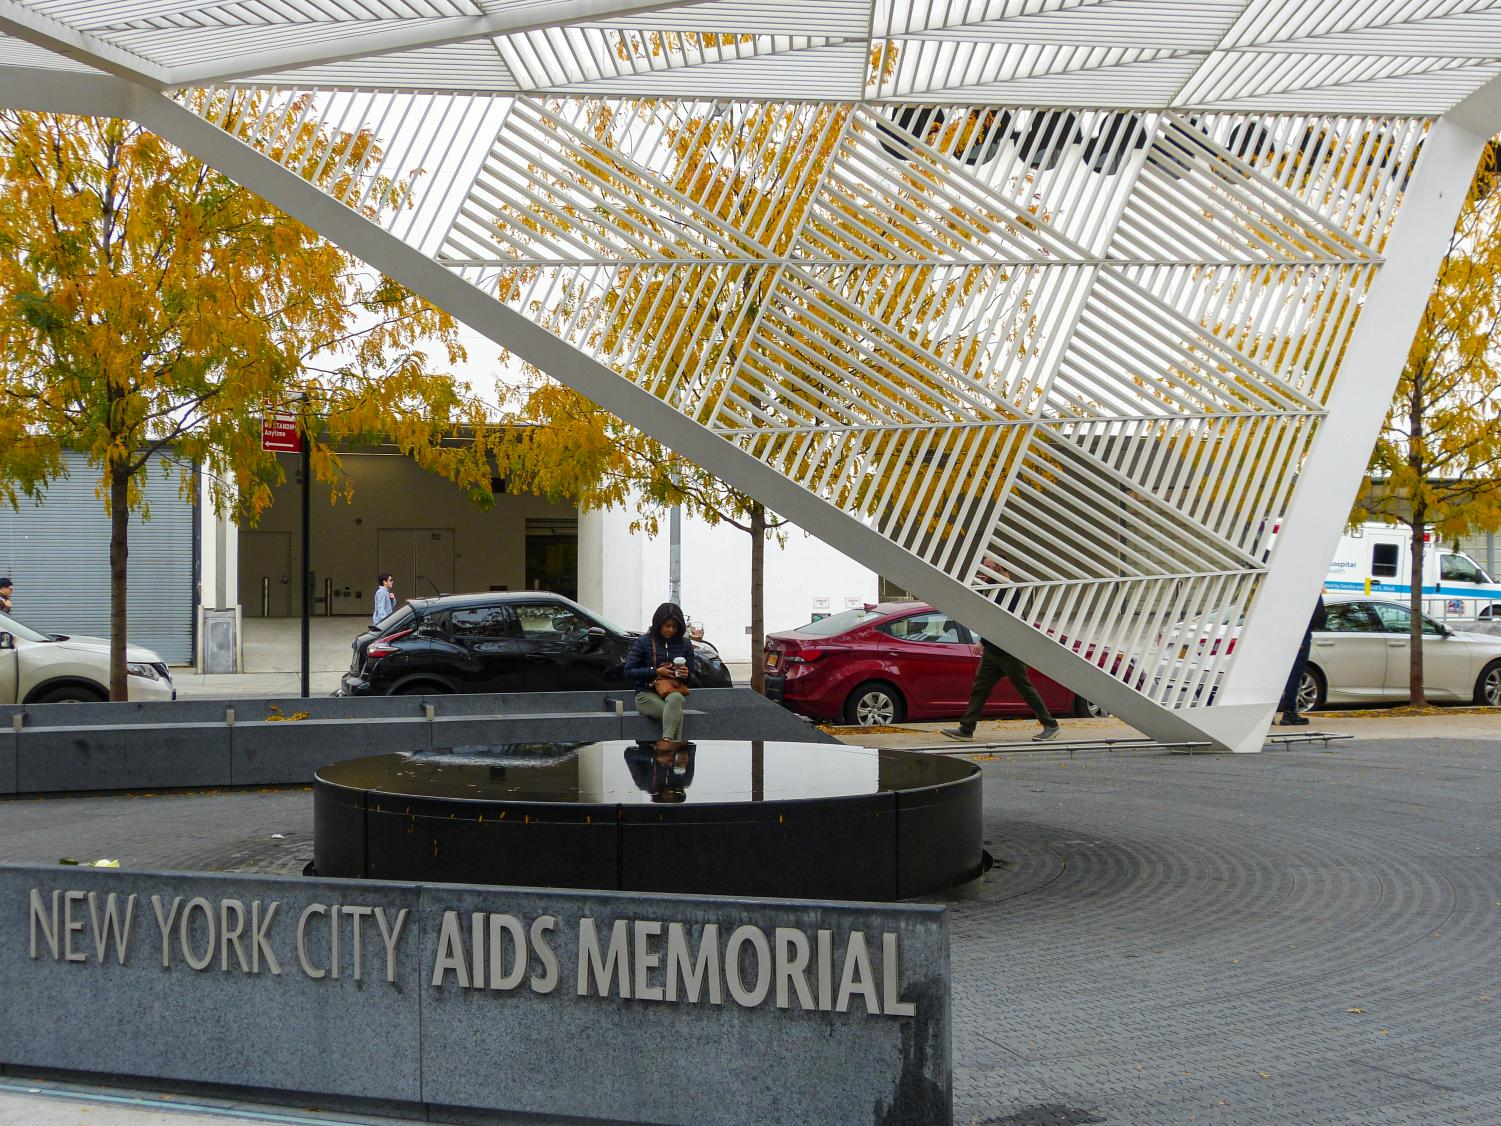 The New York City AIDS Memorial in Greenwich Village is a testament to the lives lost during the AIDS epidemic.